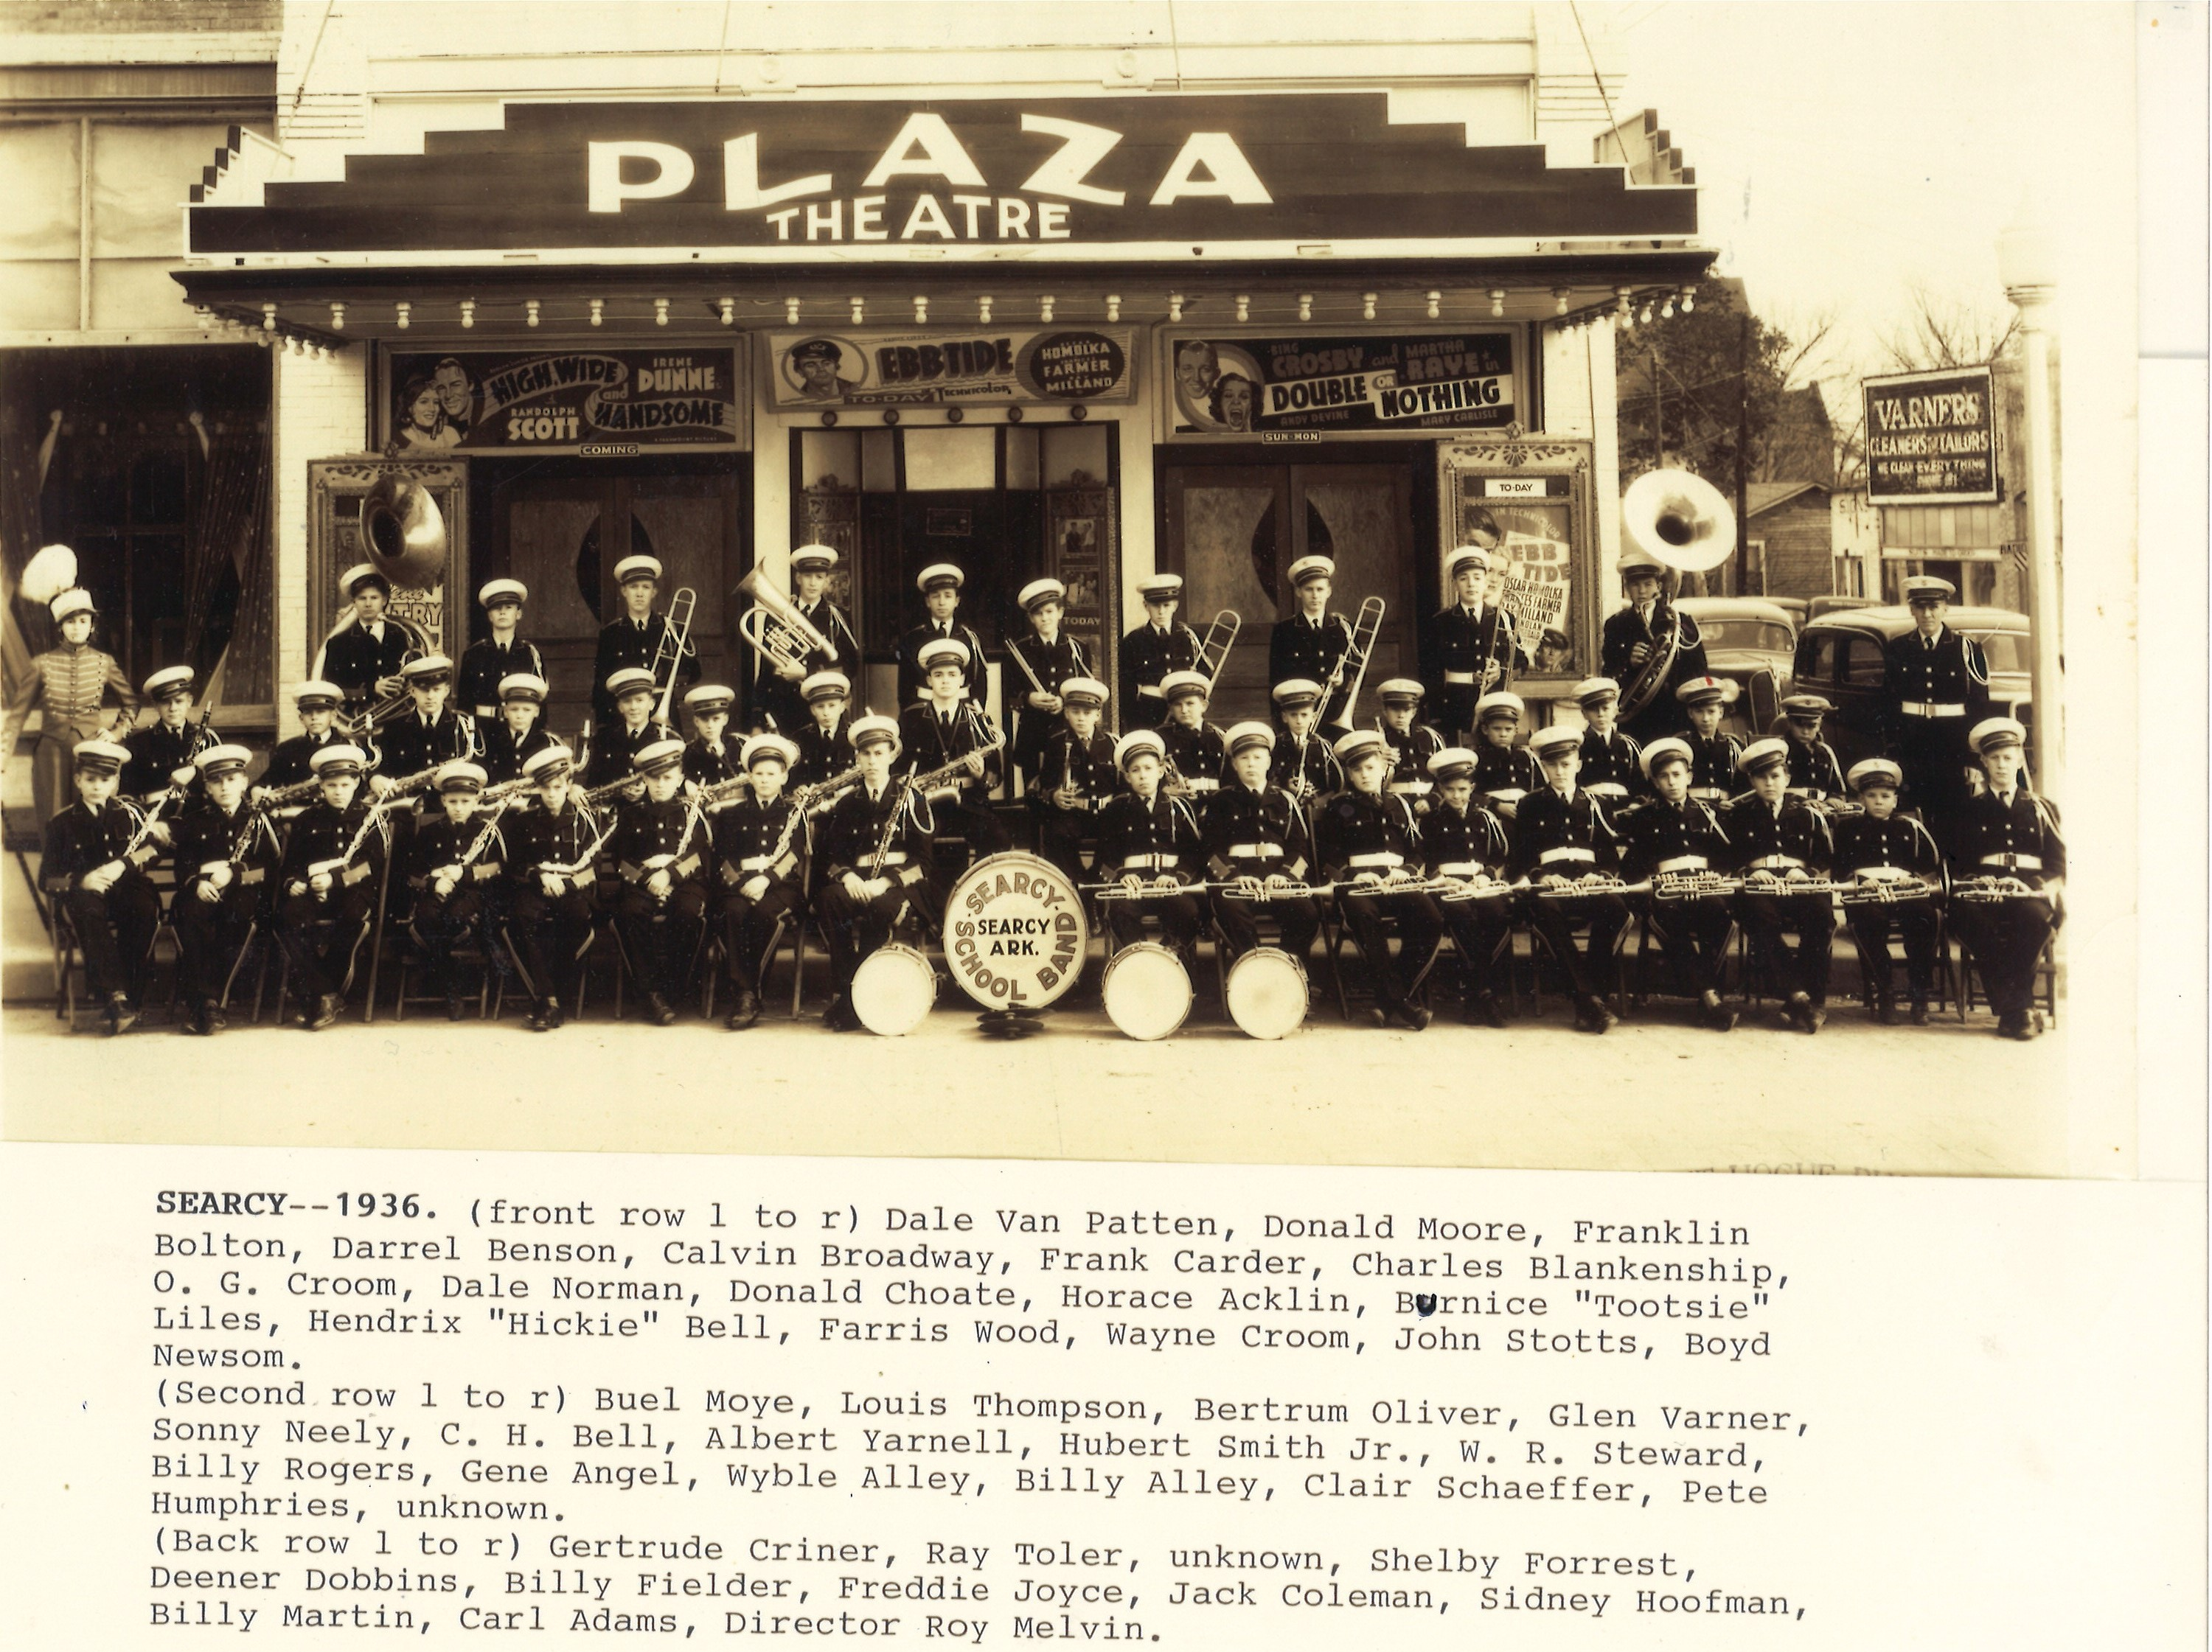 Plaza Theater Searcy AR group with names historic photo